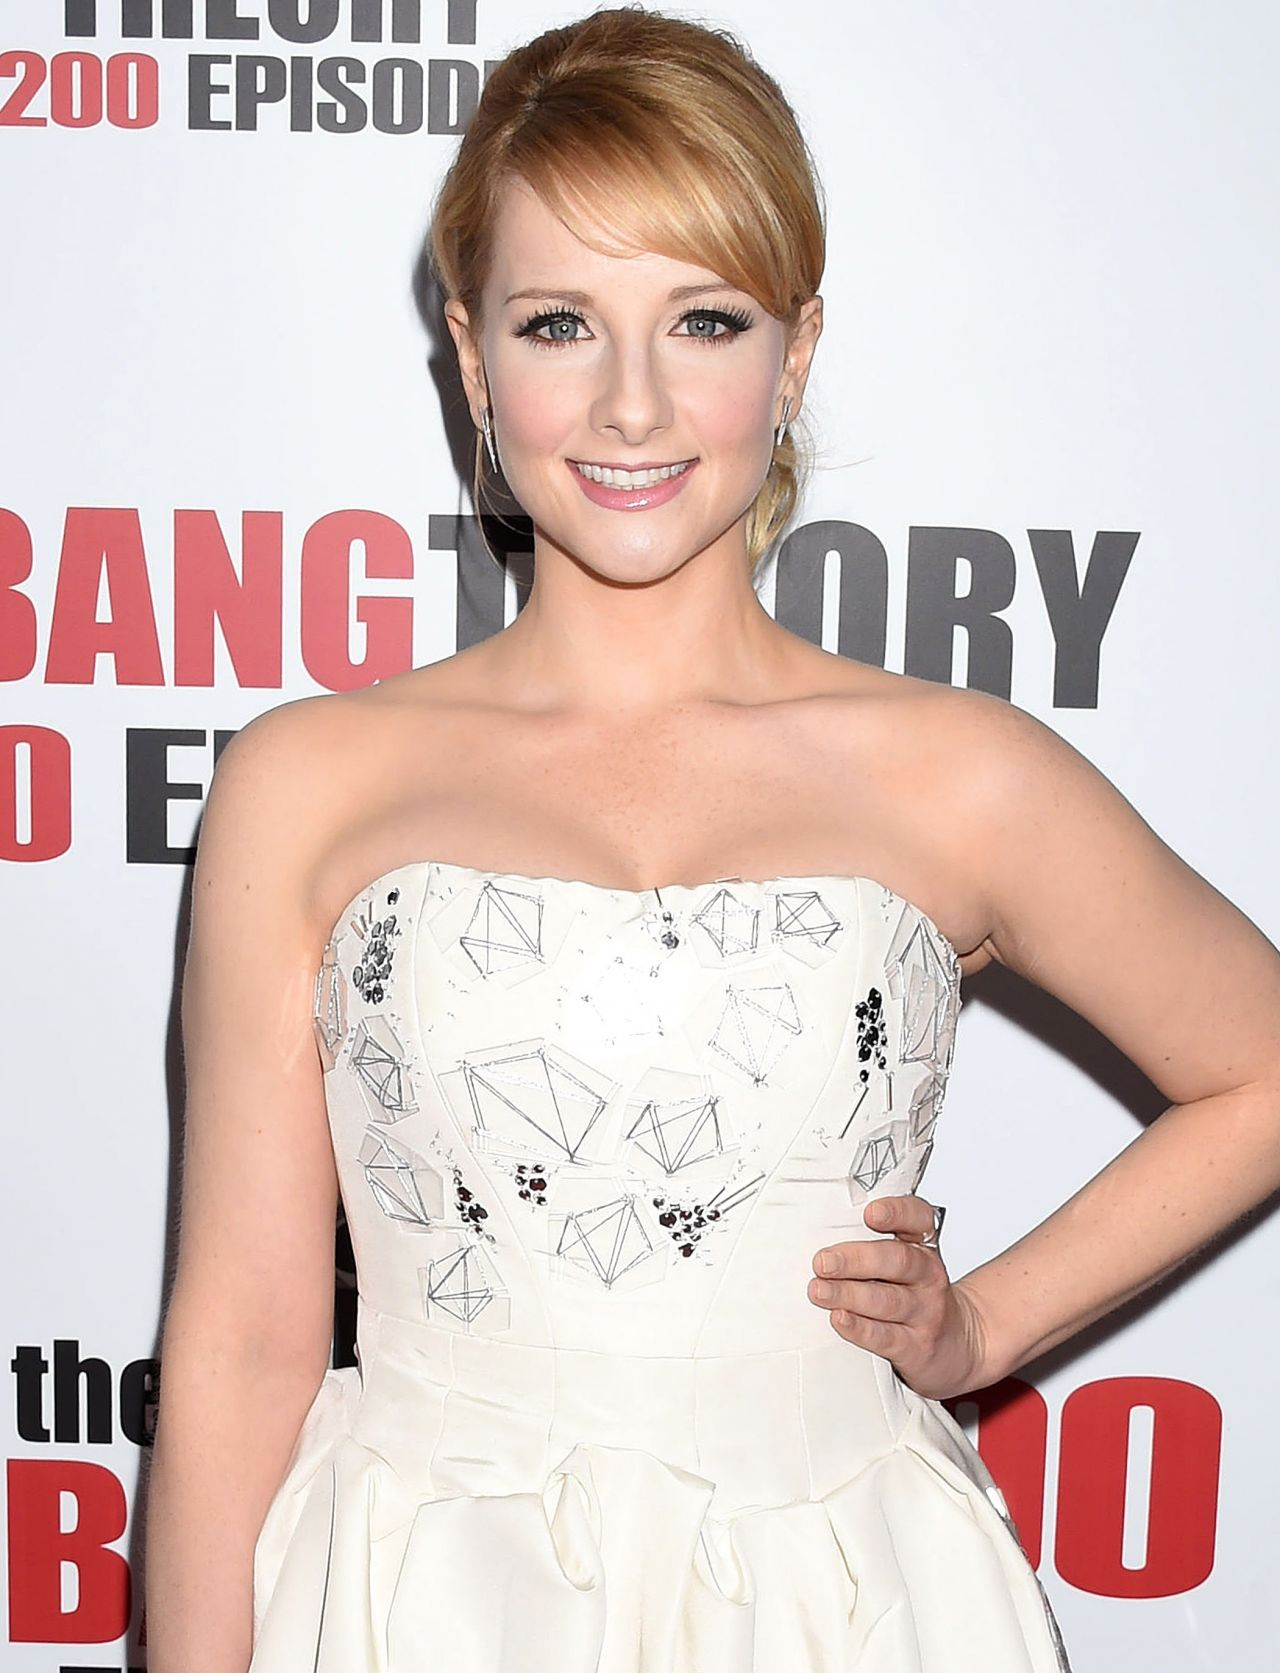 21 Facts You Need to Know About The Big Bang Theory s Melissa Rauch - Page 2 - Recommended